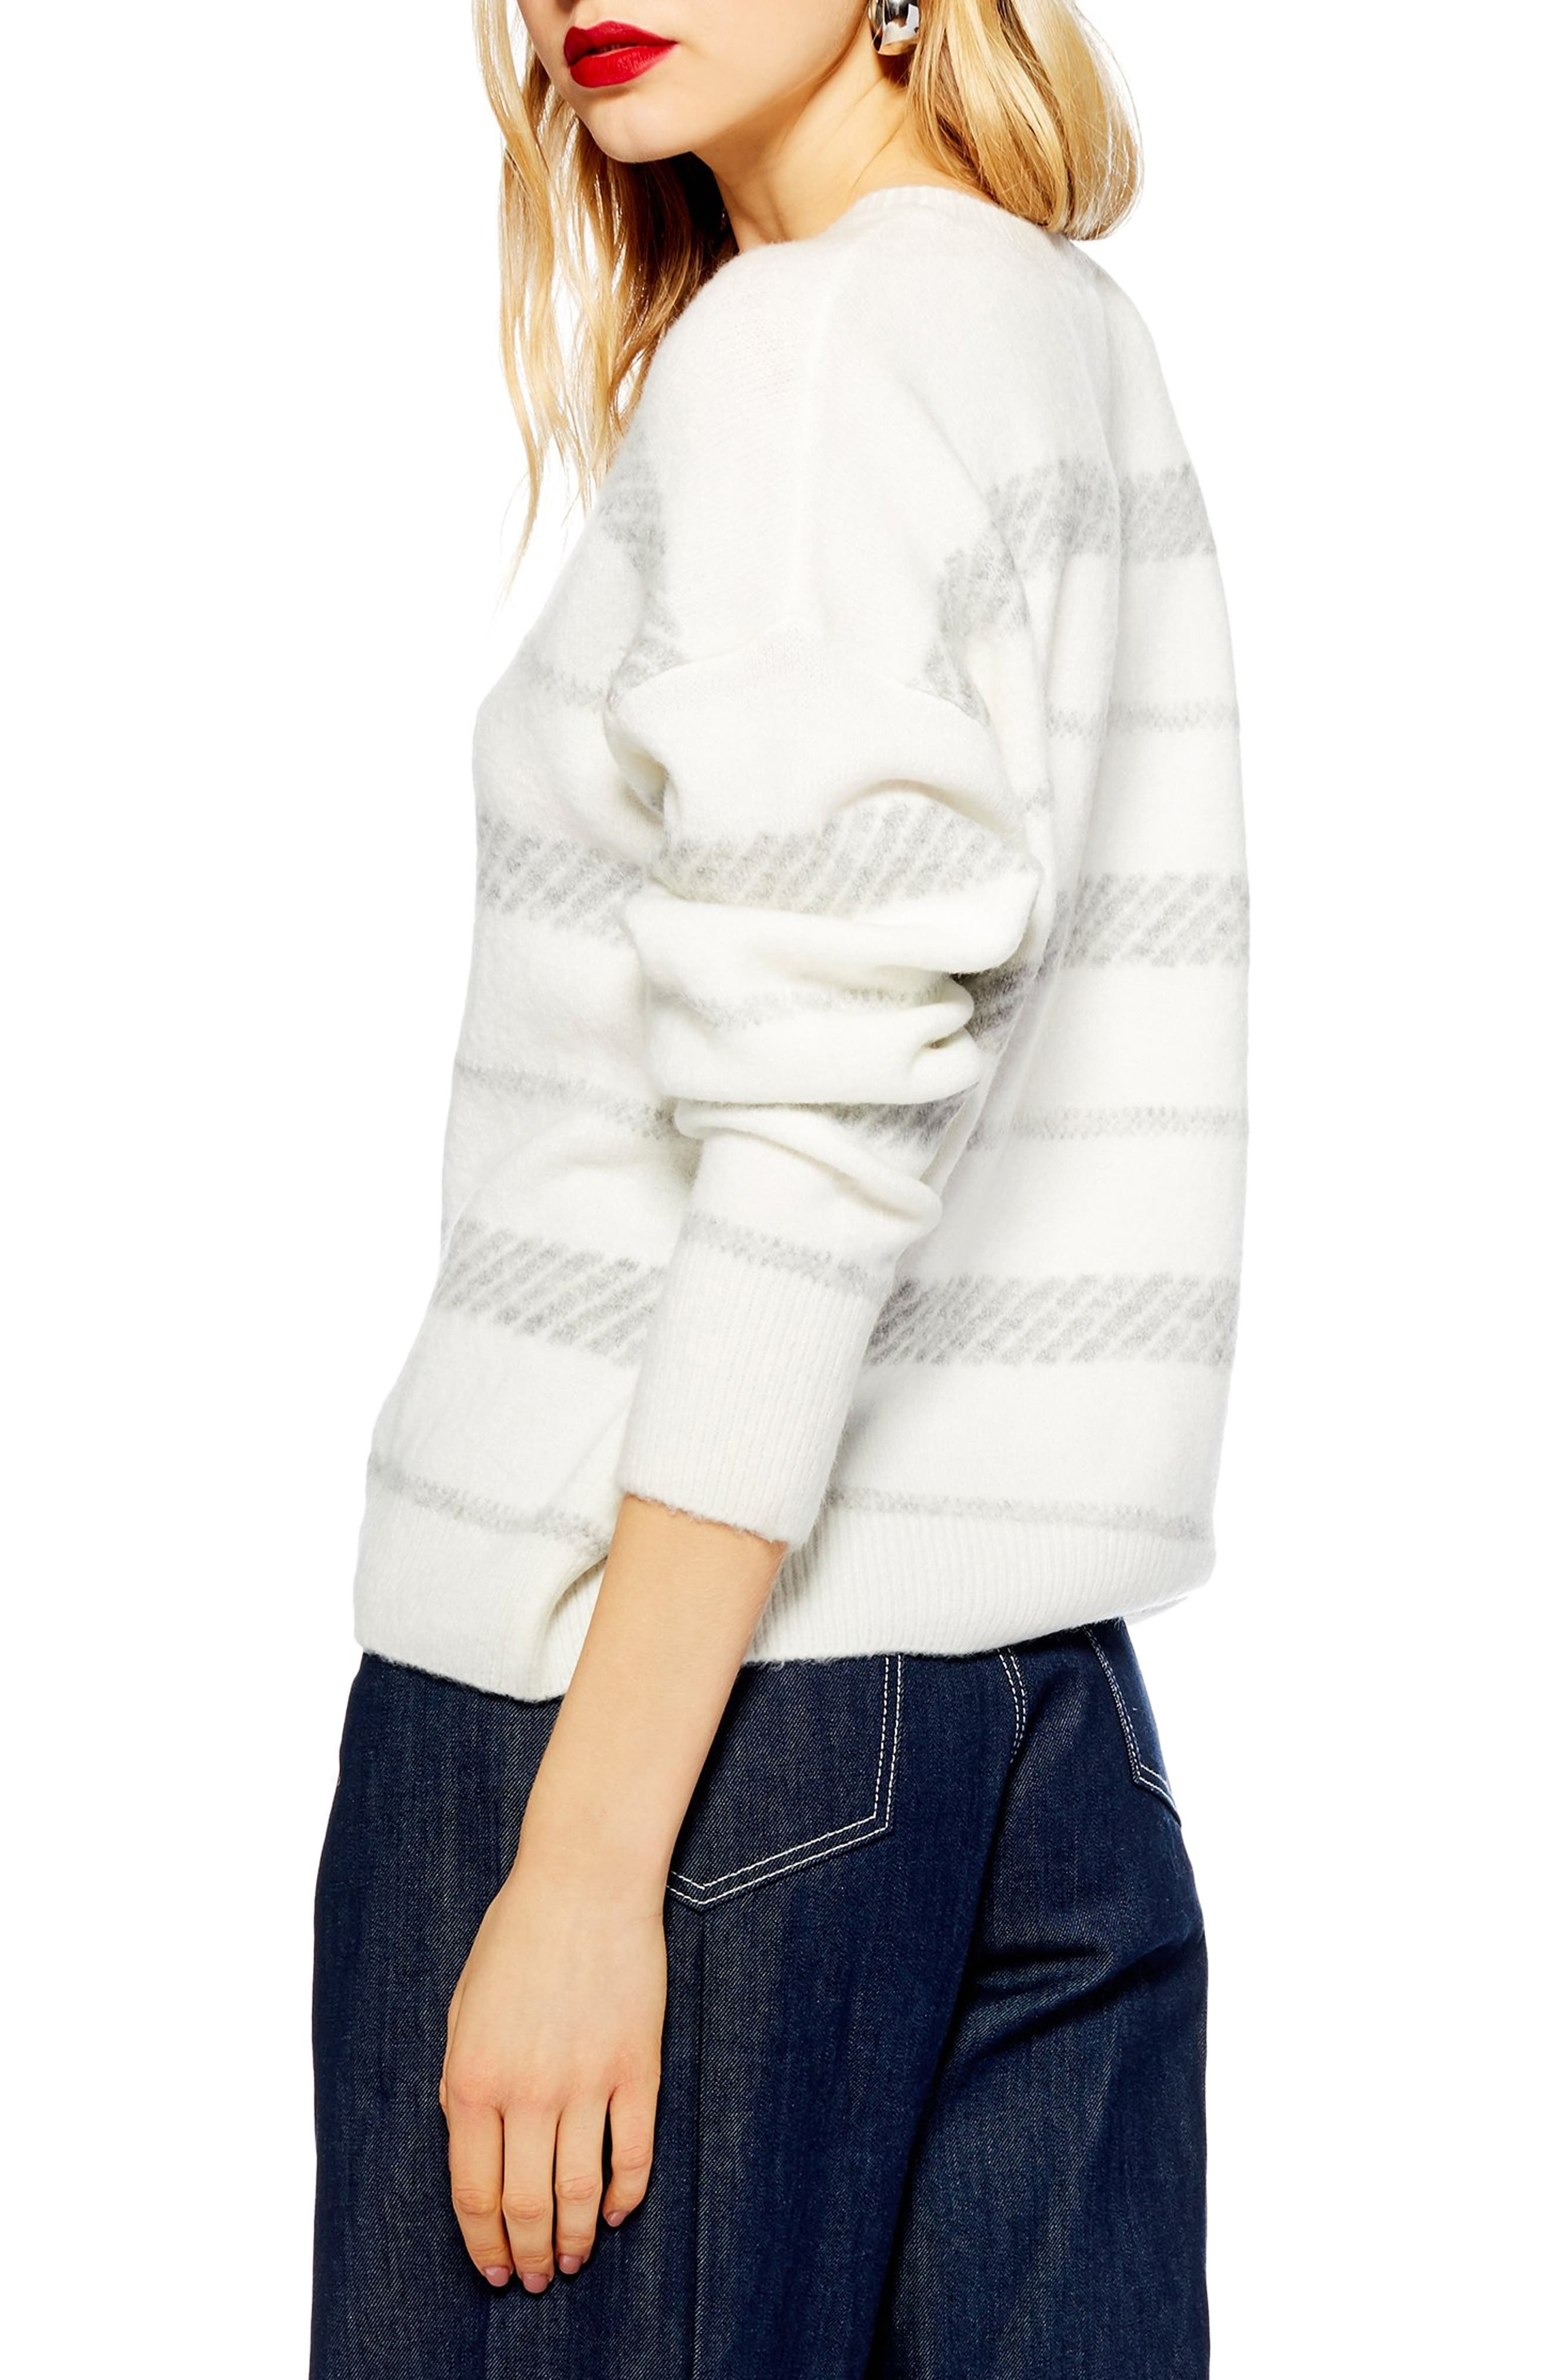 TOPSHOP, Supersoft Stripe Sweater, Alternate thumbnail 2, color, 900